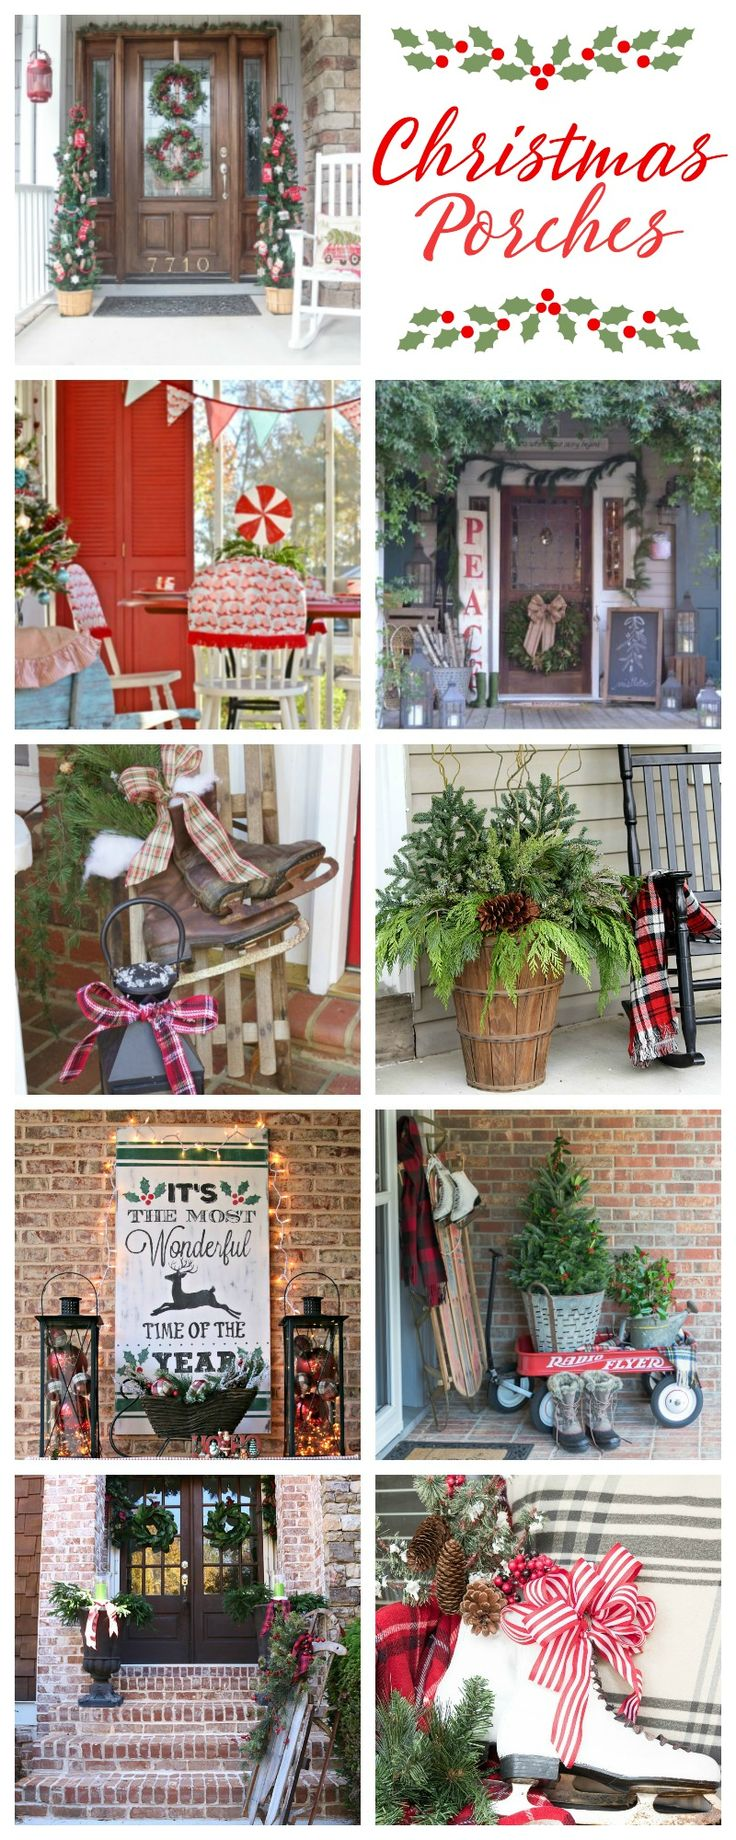 Why do we decorate our houses at christmas - Best 25 Christmas Porch Decorations Ideas Only On Pinterest Christmas Decor Christmas Porch And Winter Porch Decorations